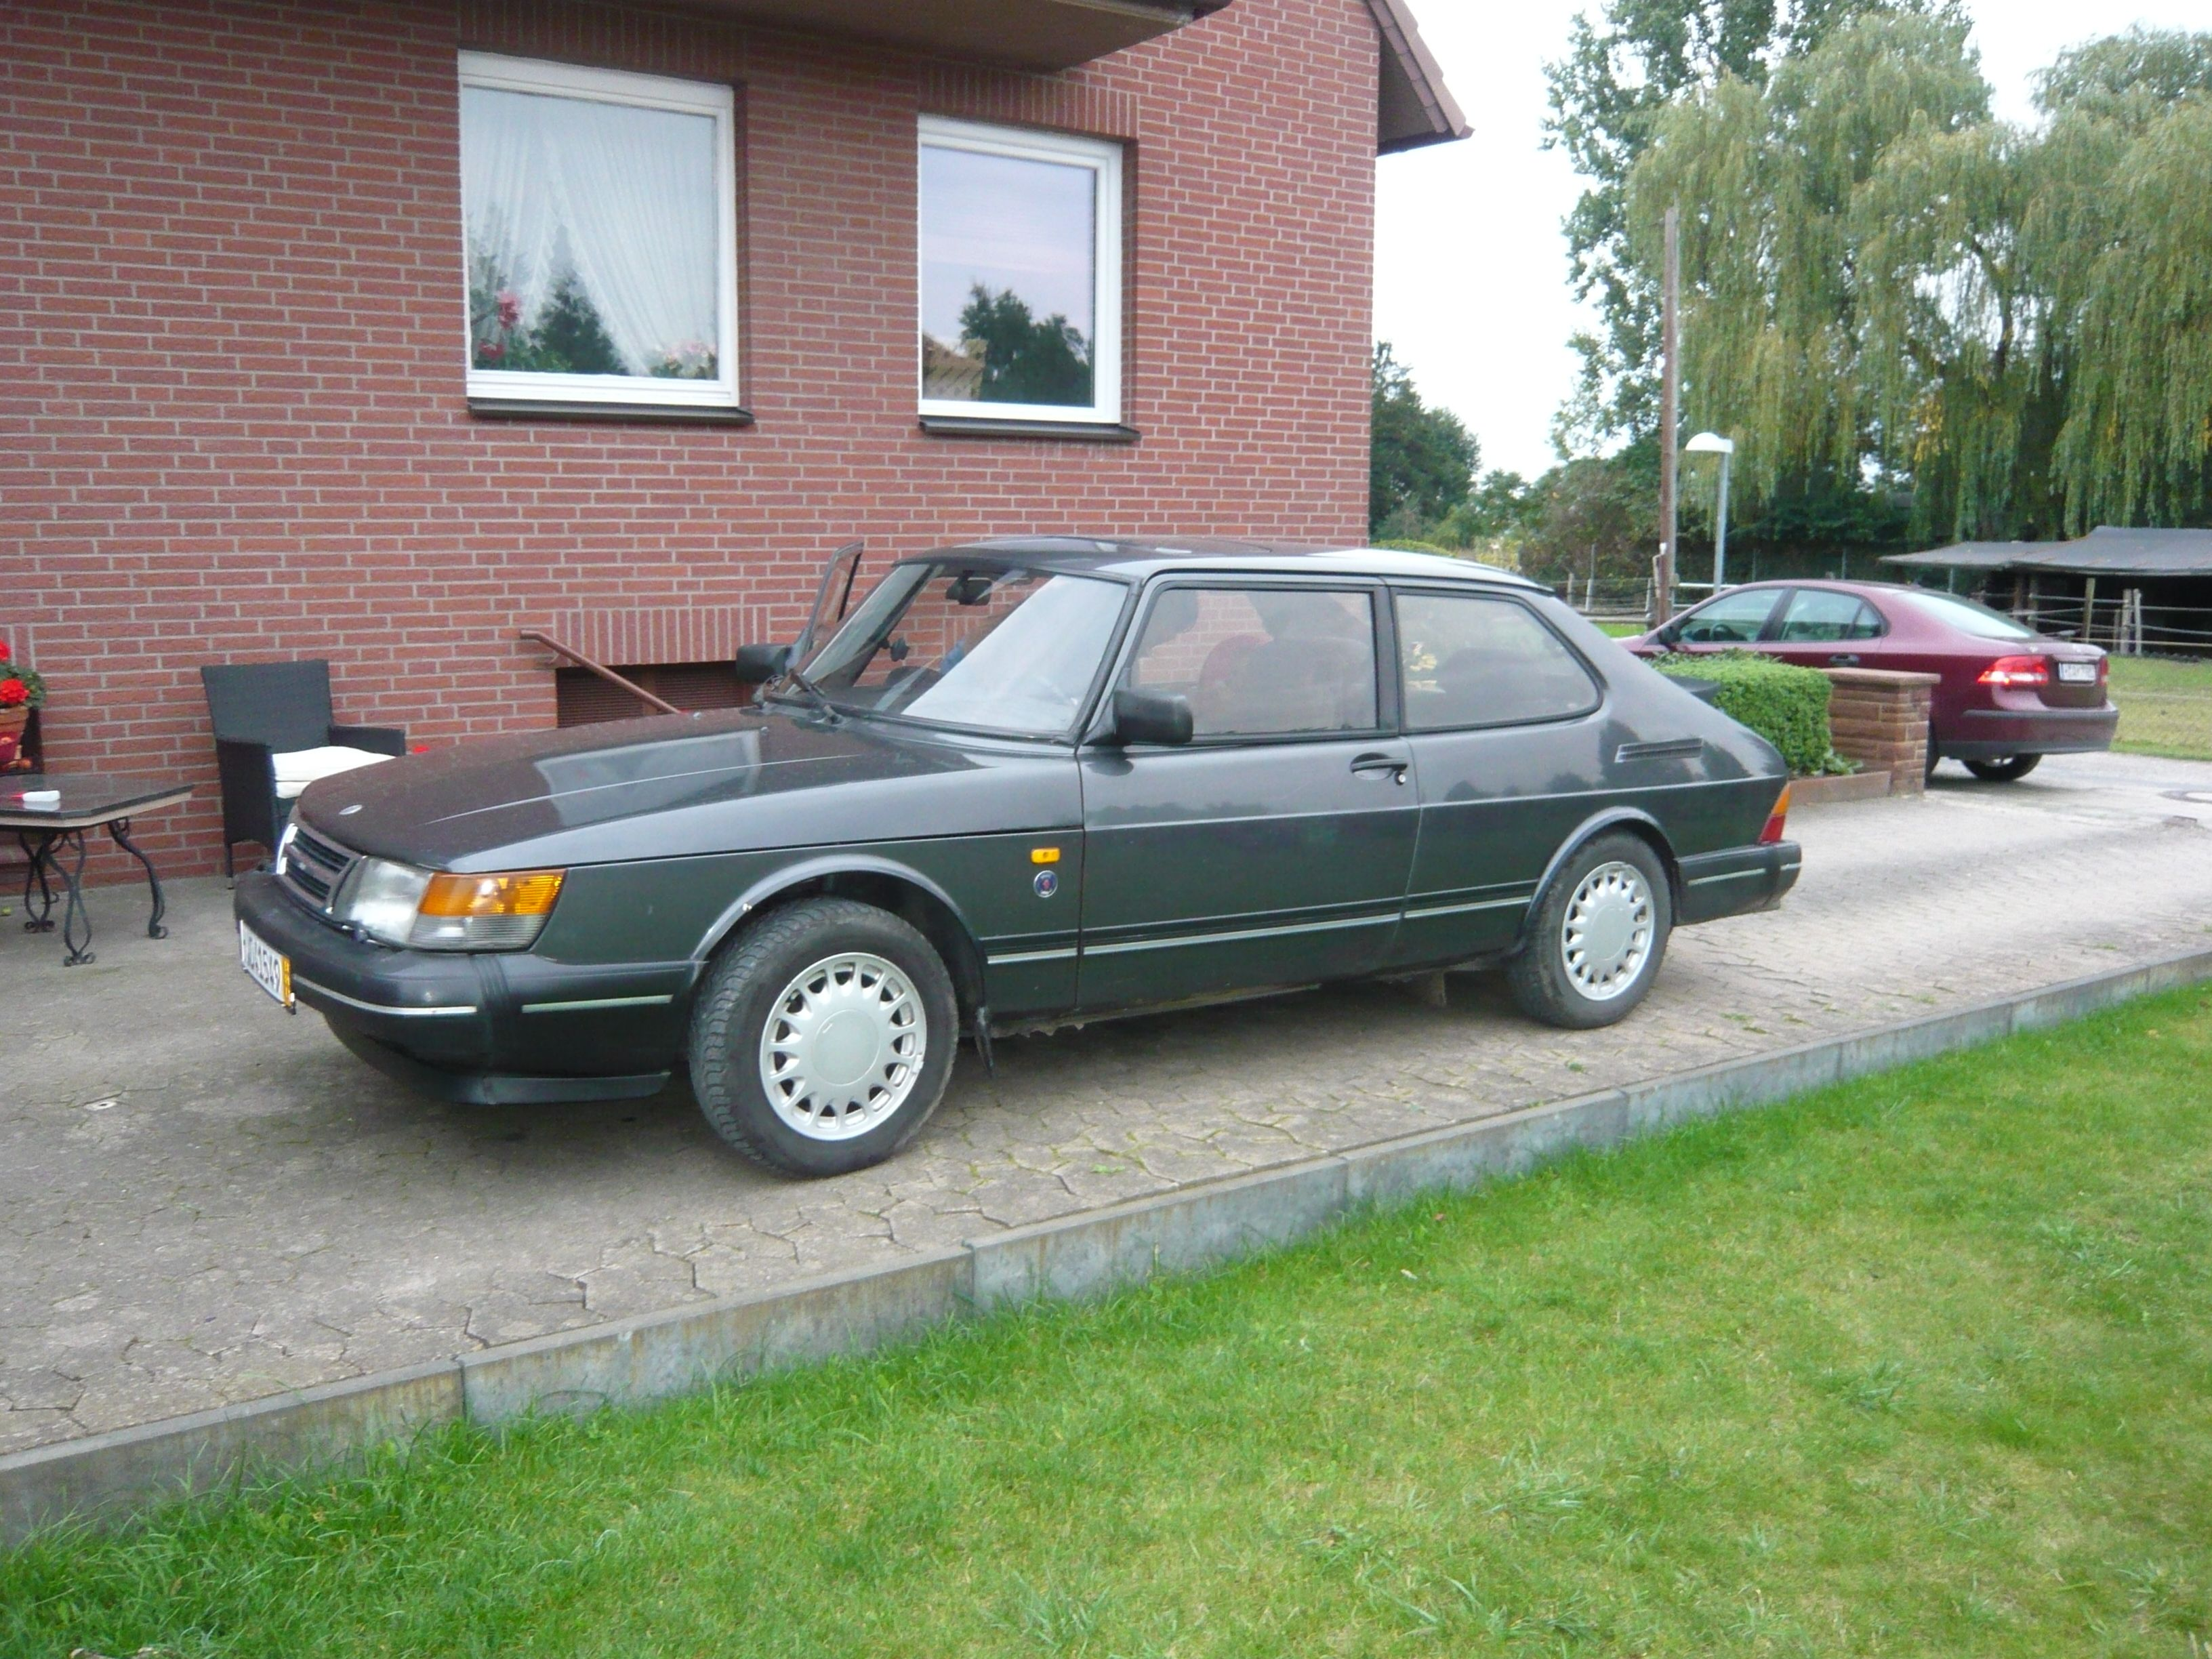 Foreground #SAAB 900-I and Background #SAAB 93-II #Anniversary 2.2 TiD with #Hirsch